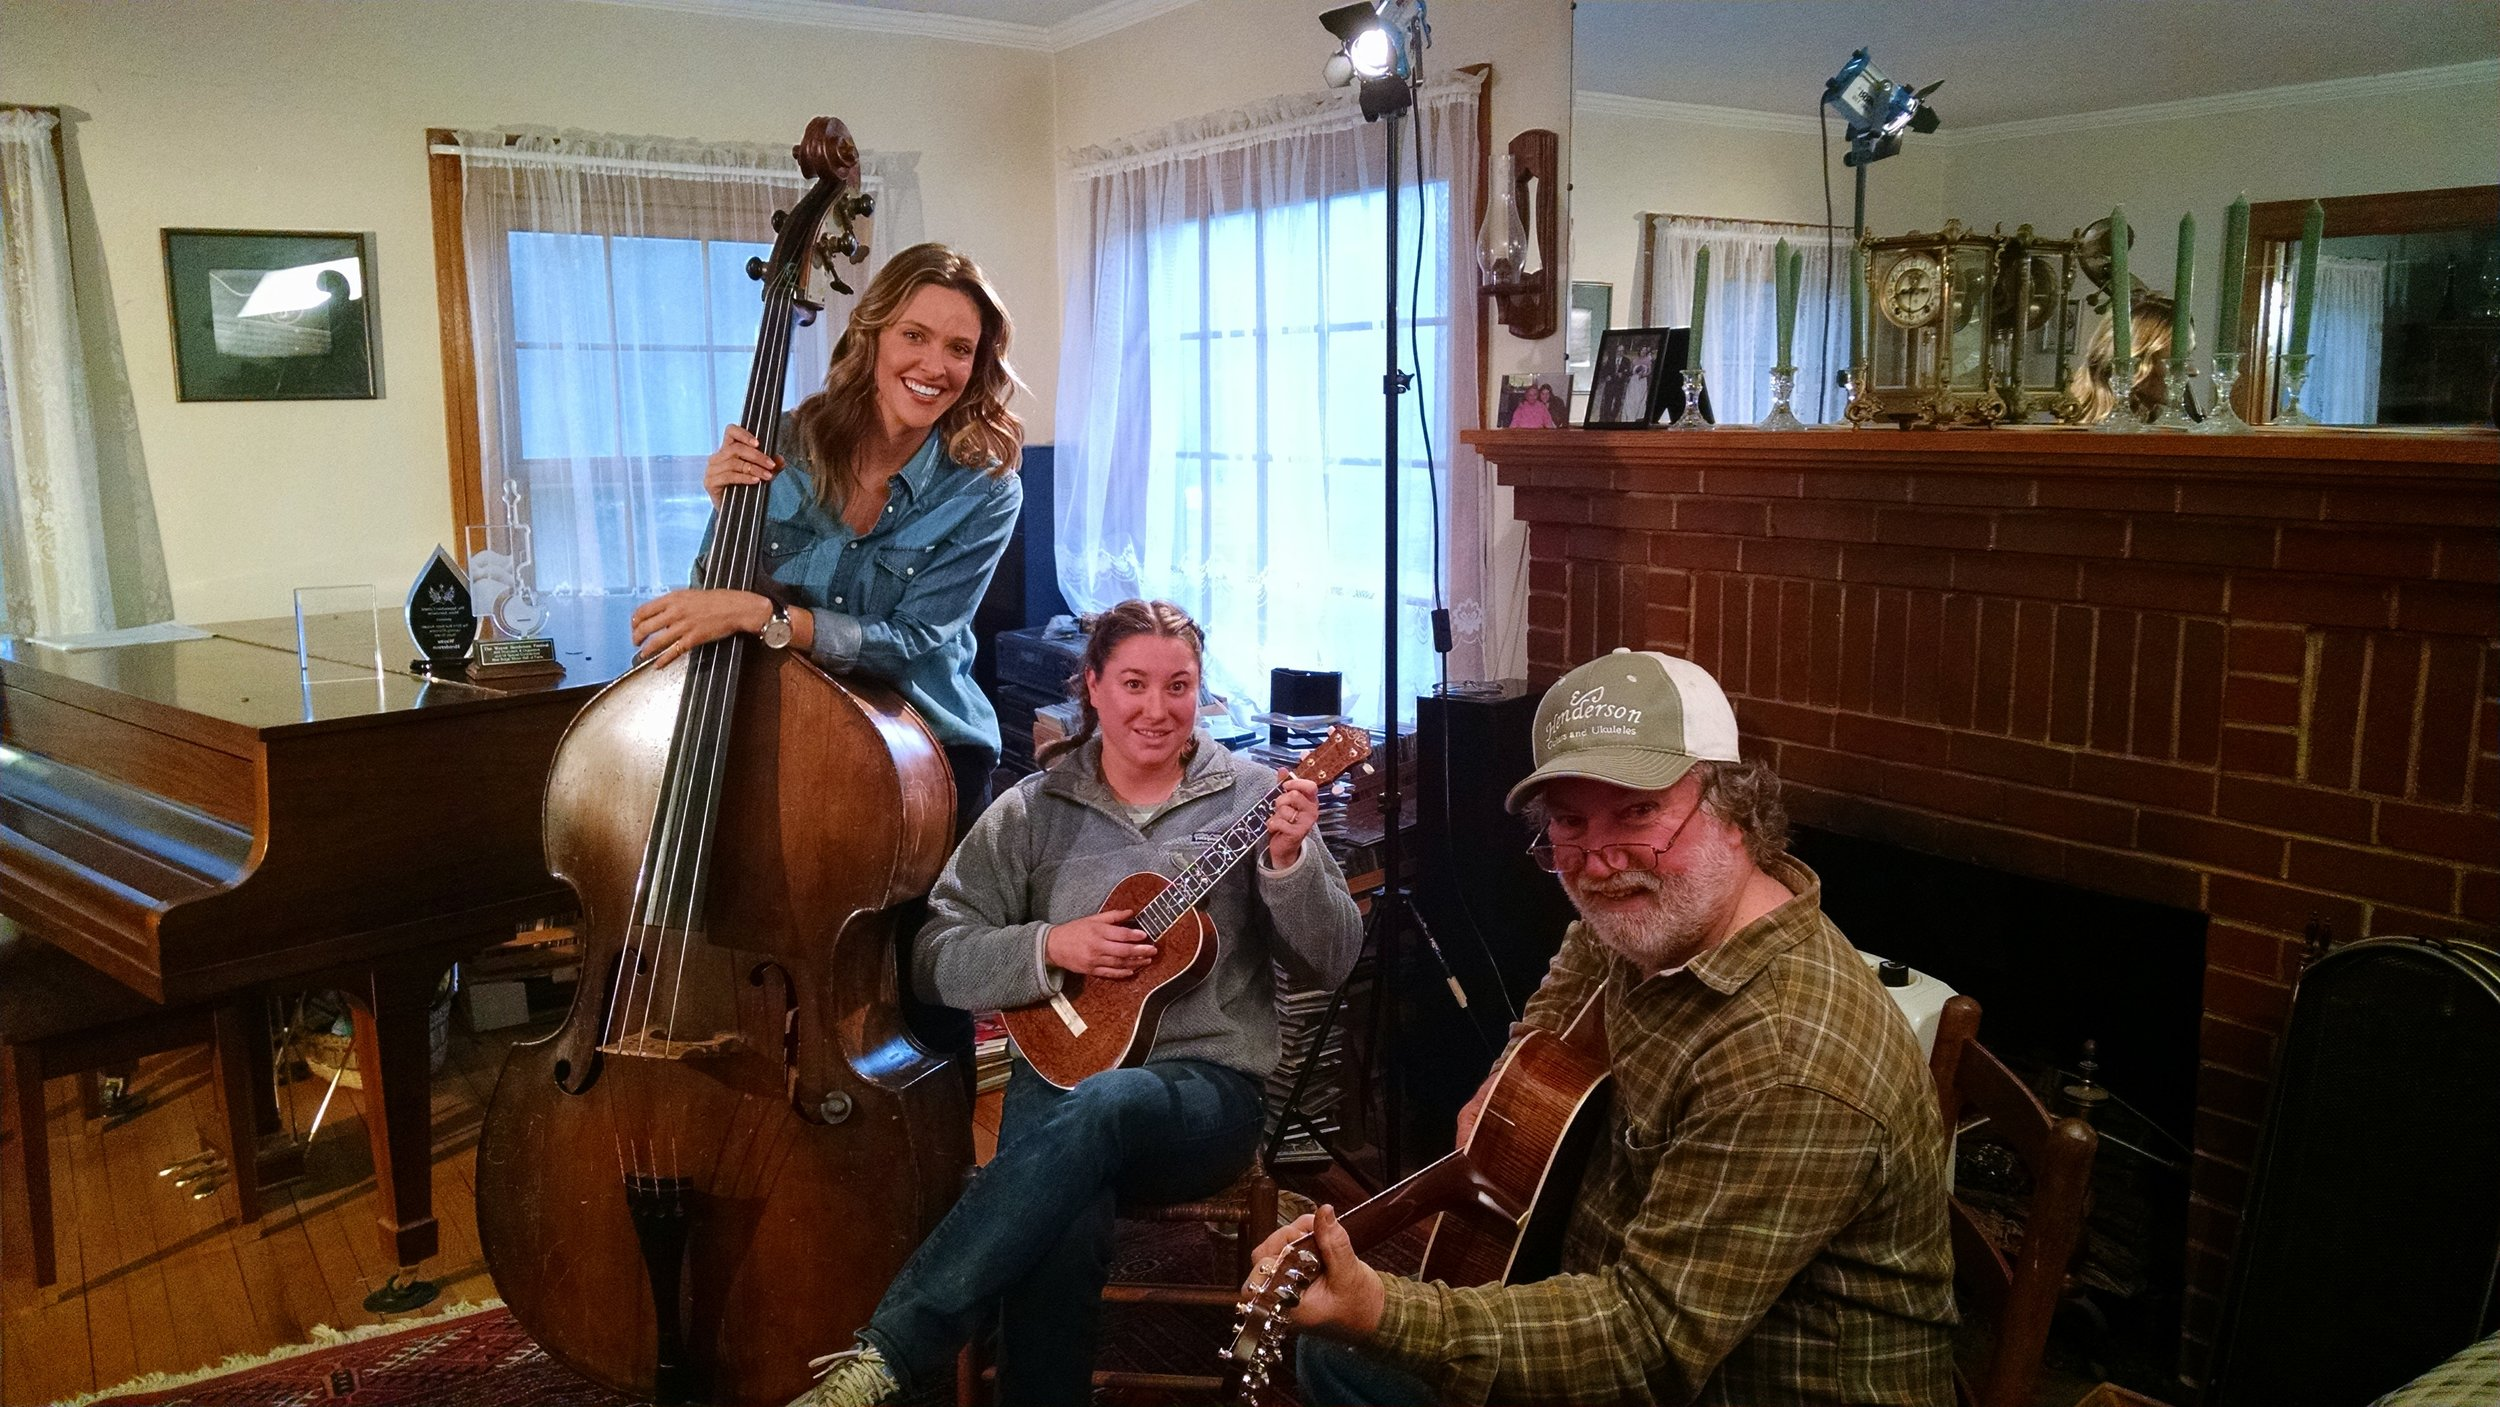 Teaching TV personality and host Jill Wagner to play bass for the taping of her show Handcrafted America